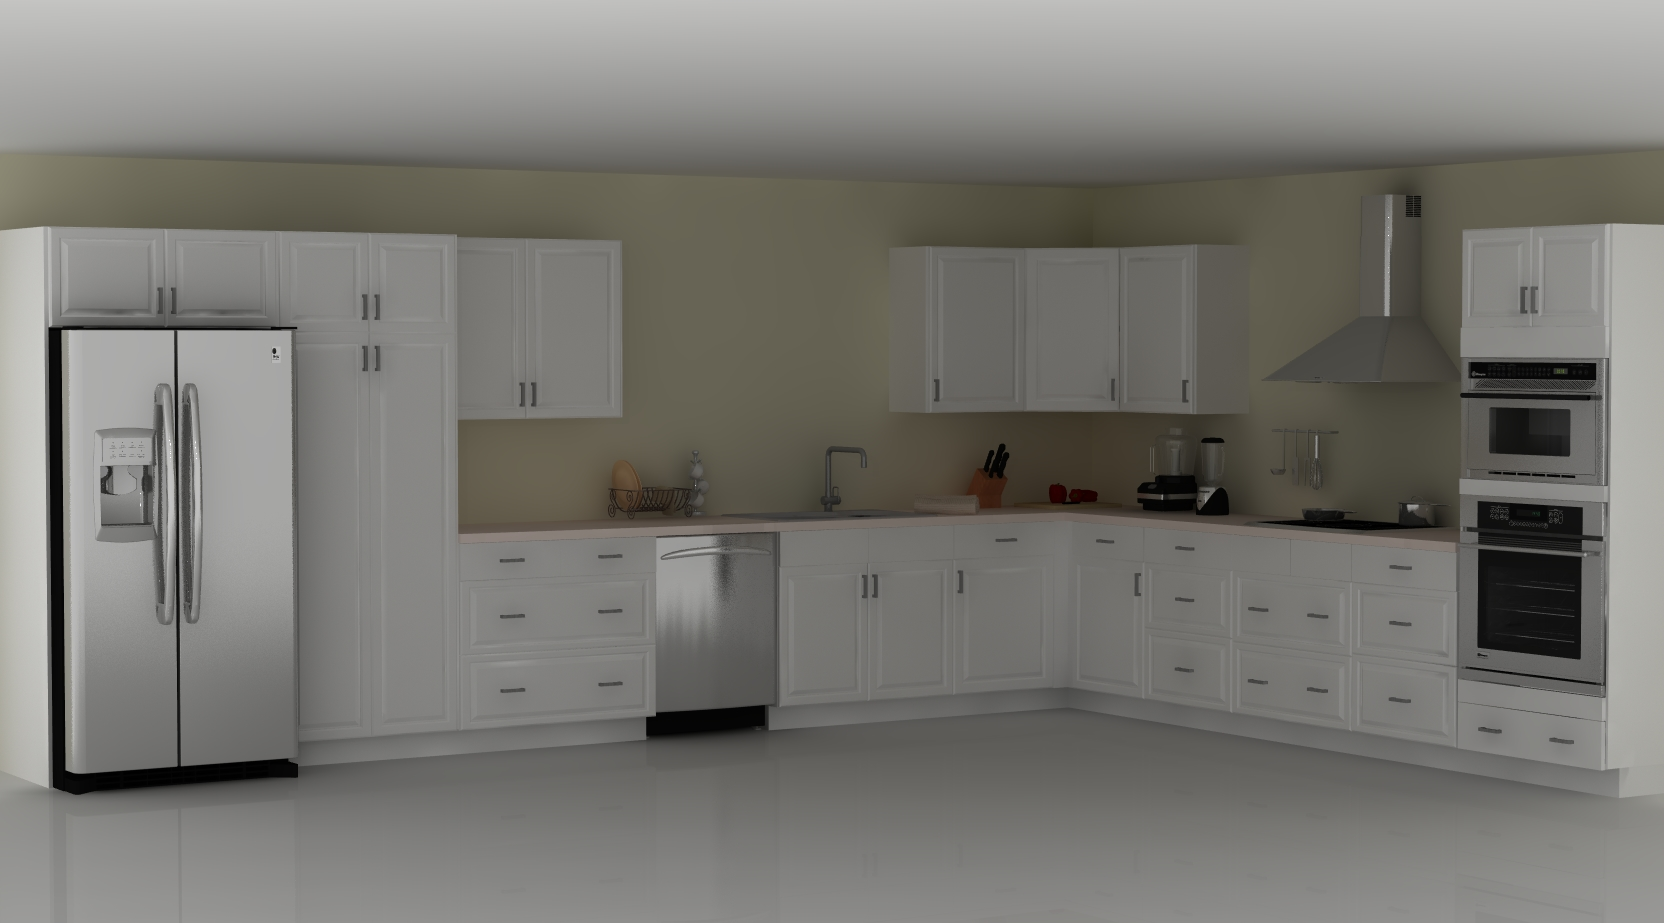 L Shaped Kitchen Layout Ikea Kitchen Designer Tips Pros And Cons Of An L Shaped Layout